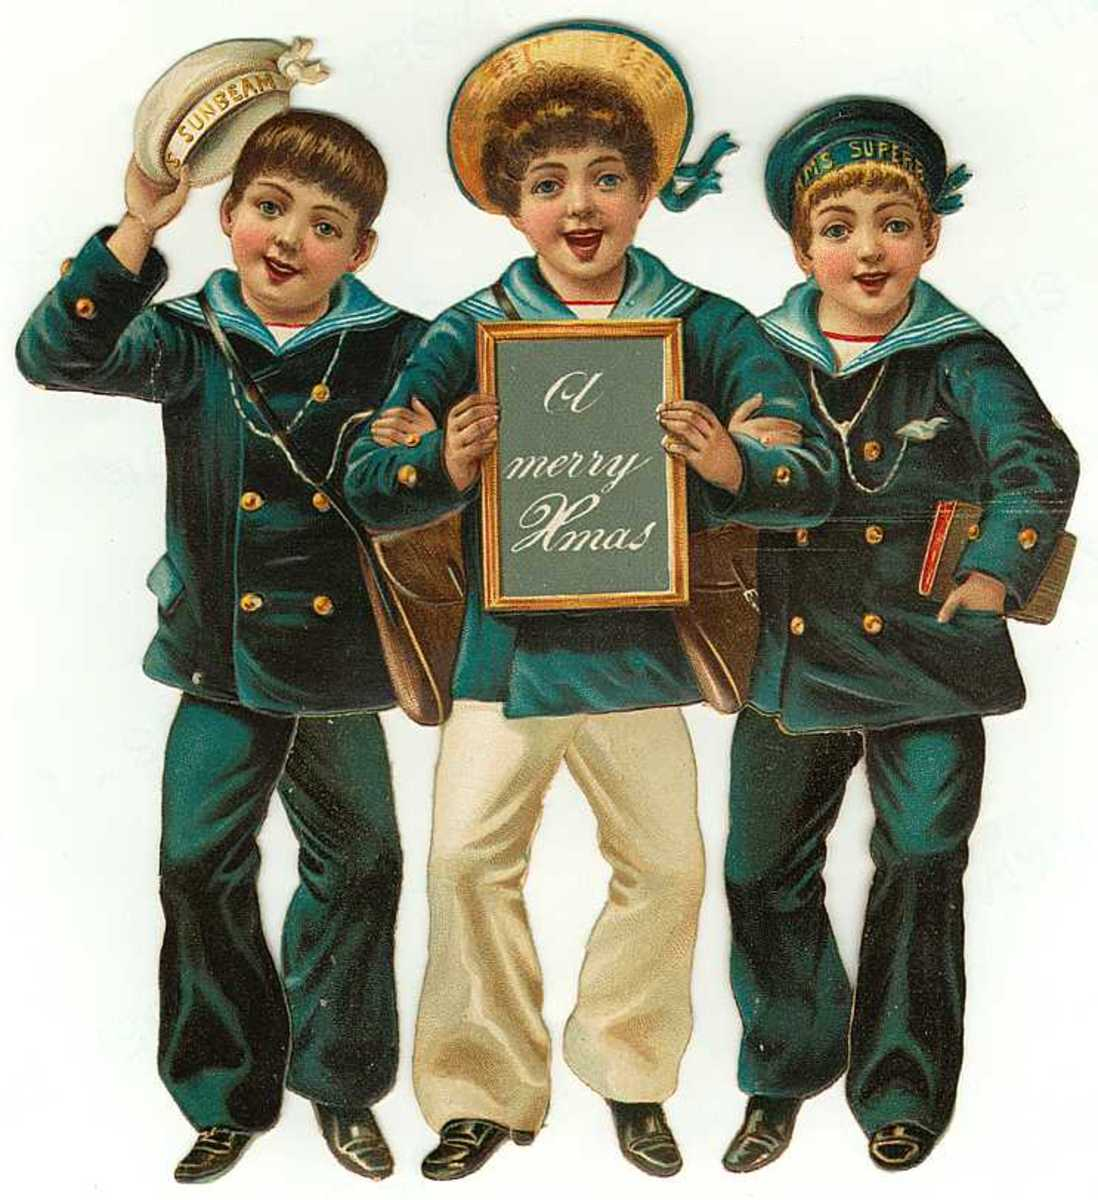 Please scroll down to see the vintage Christmas images